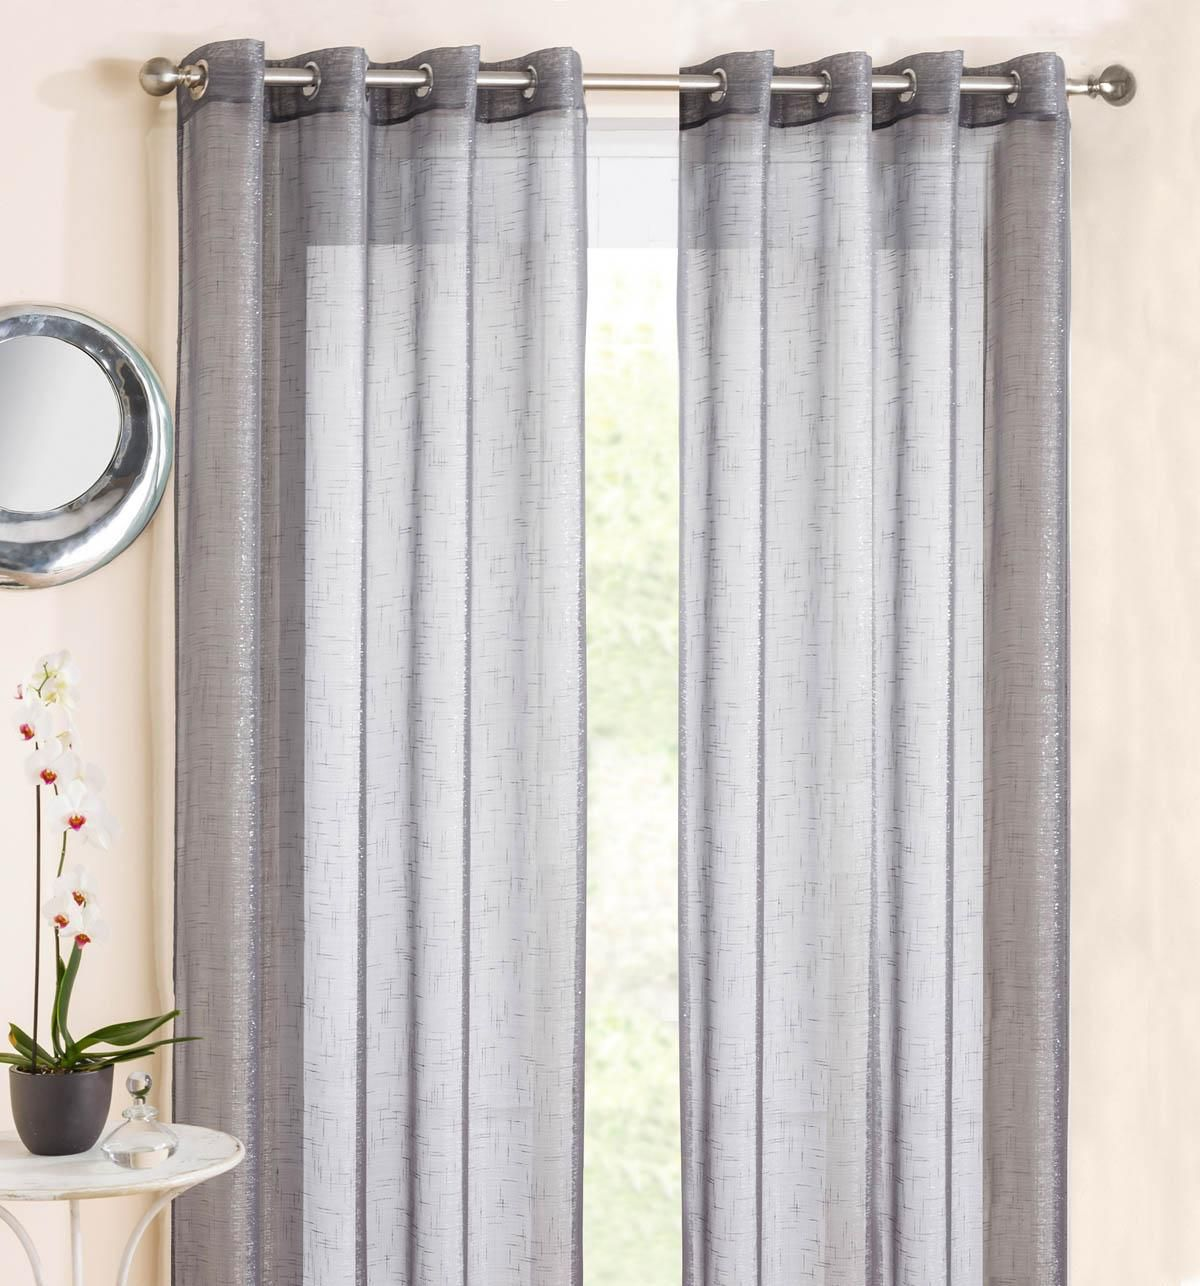 Marrakesh Eyelet Voile Panel Grey | Marrakesh, Conservatories and ... for Grey And White Voile Curtains  150ifm